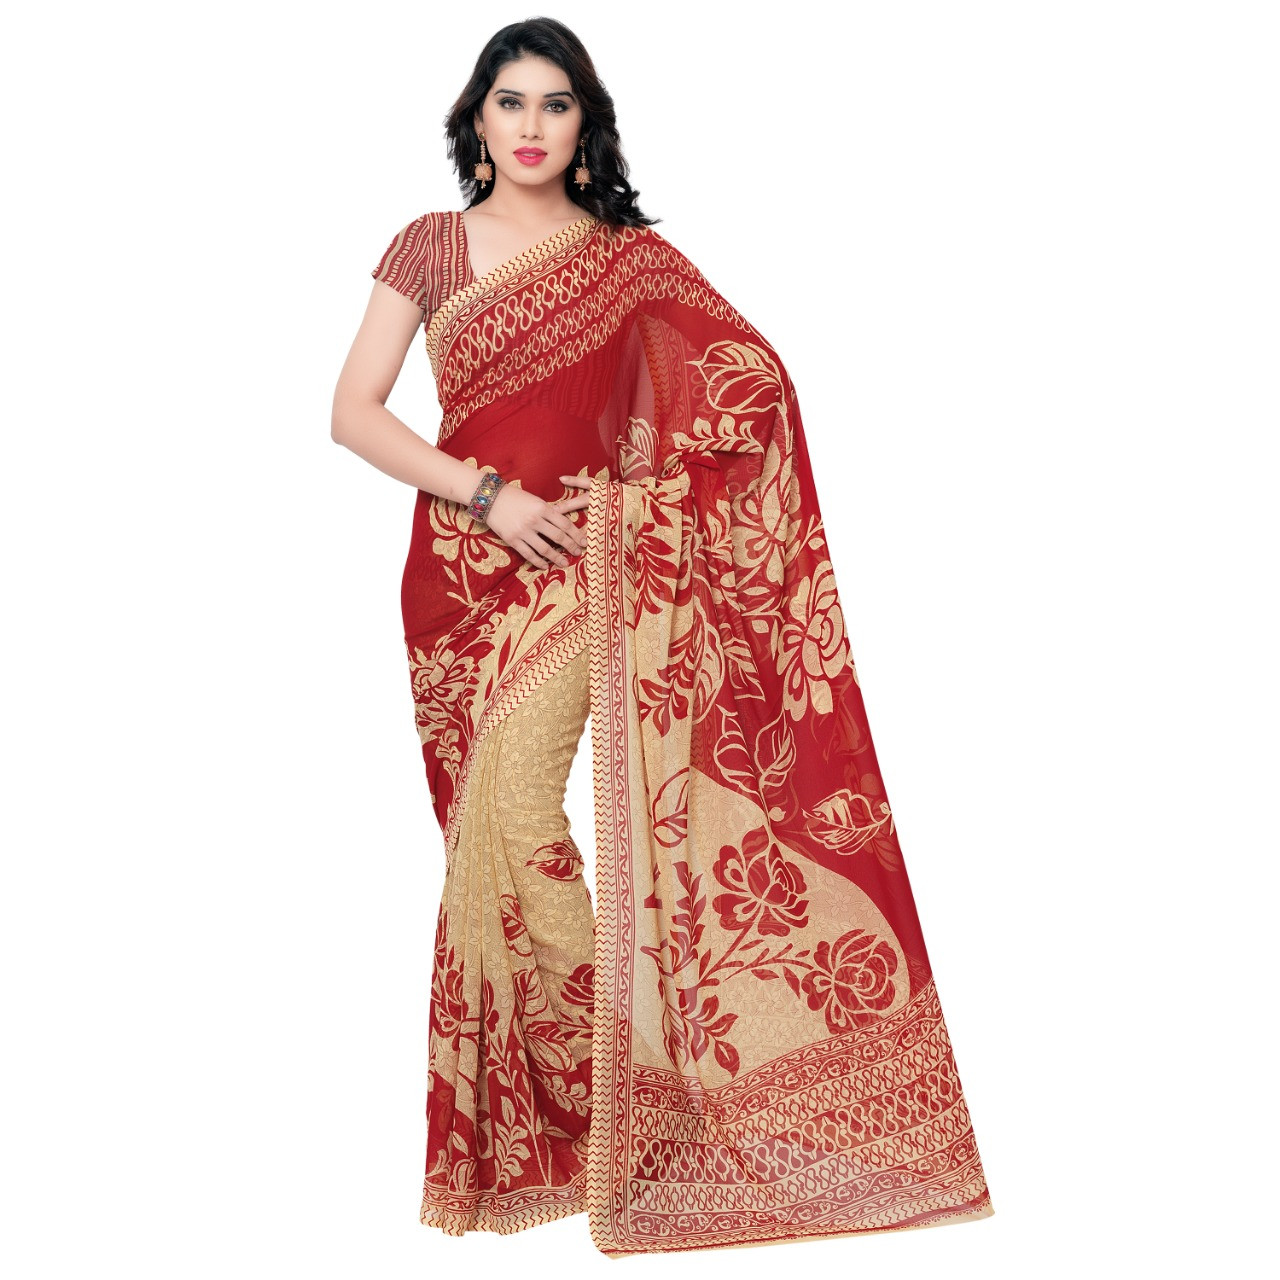 Beautiful Faux Georgette Brown&Cream Color Printed Saree With Blouse